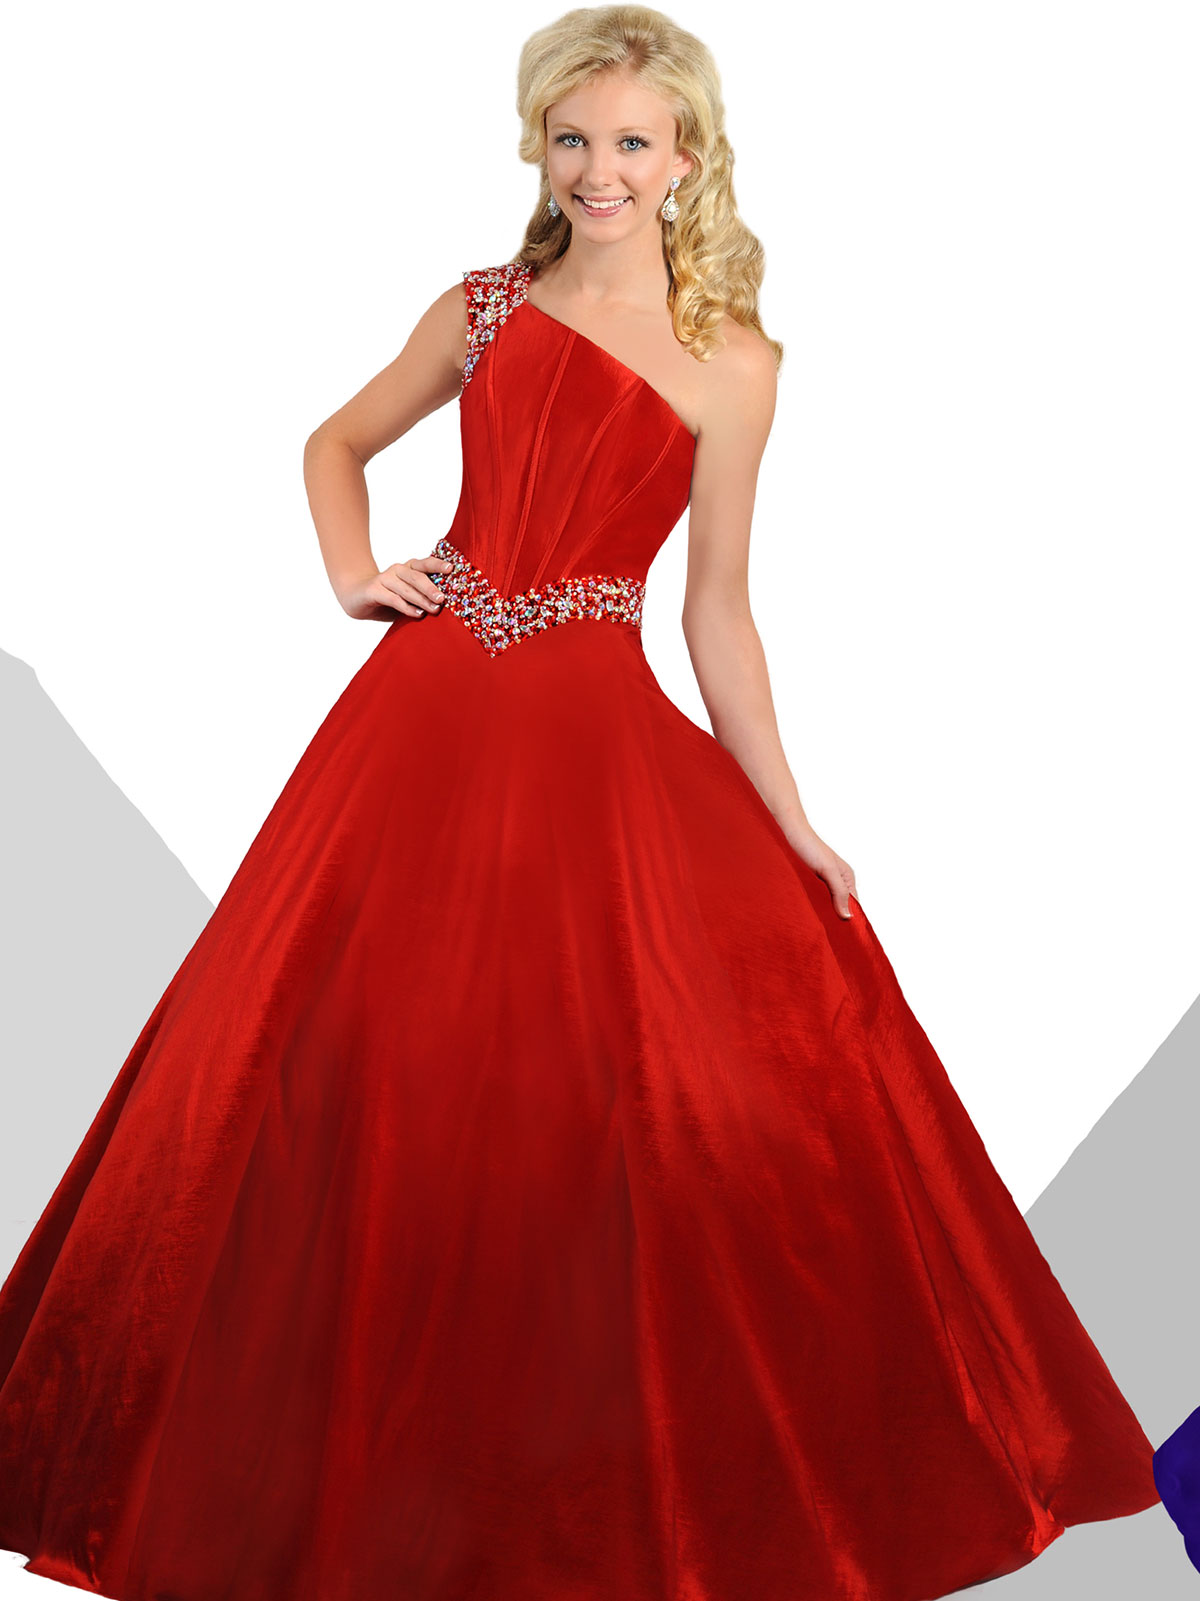 Ritzee Tweens Teen T813 One Shoulder Taffeta Ball Gown Dress ...